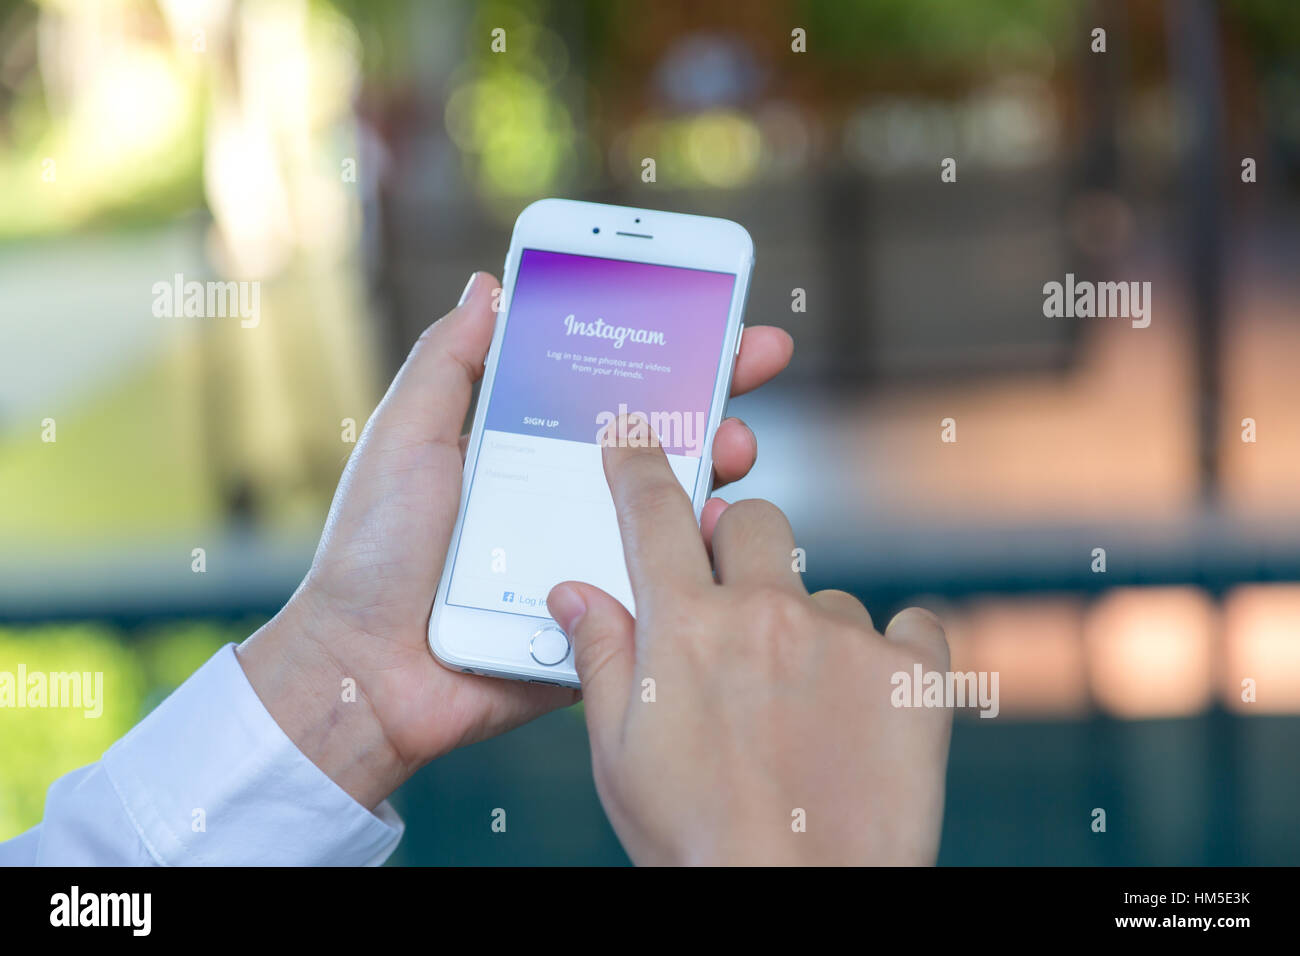 Loei, Thailand - August 12, 2015: Hand holding Iphone with mobile application for Instagram on the screen - Stock Image